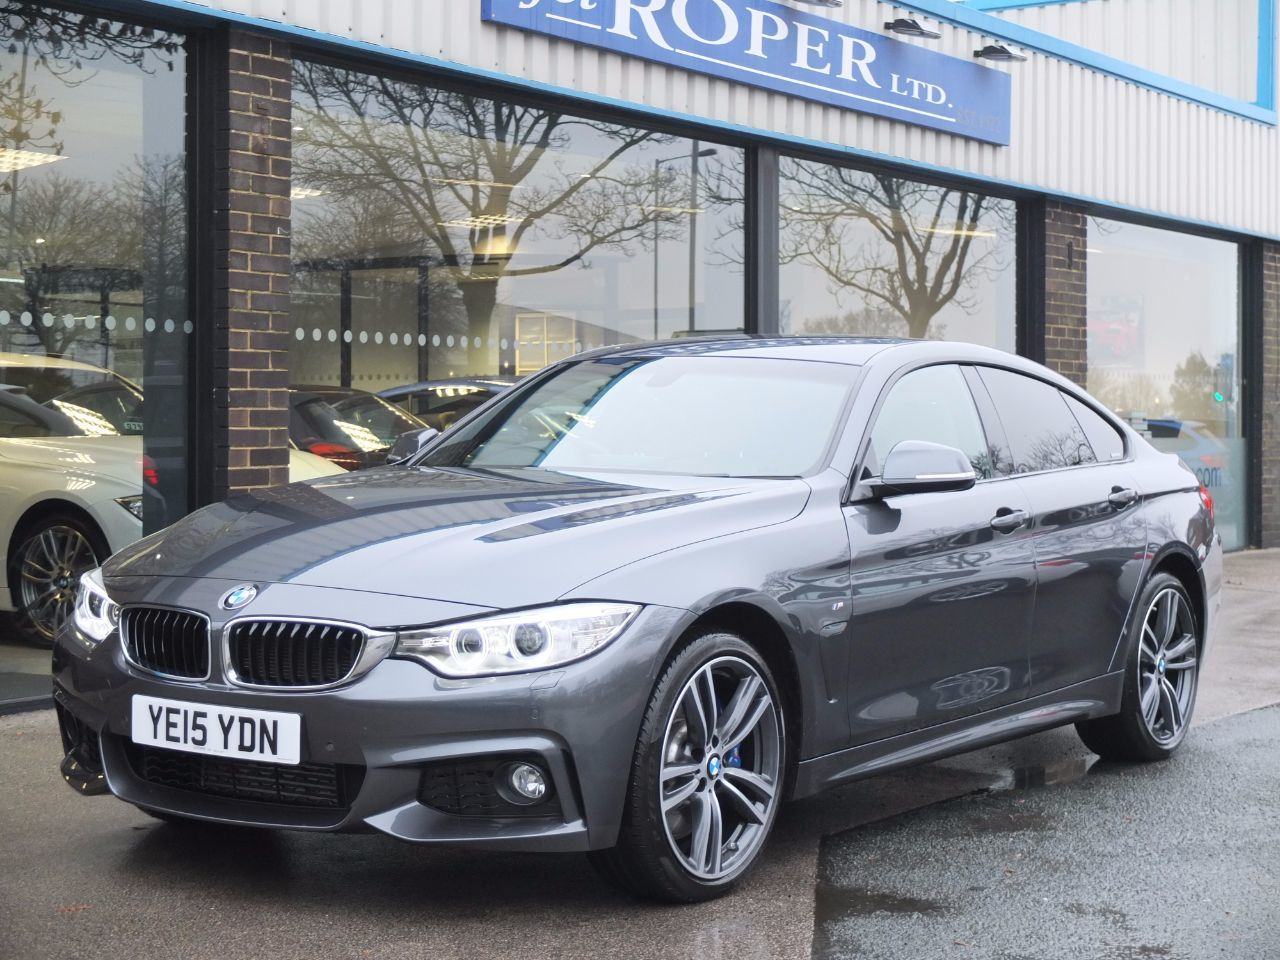 BMW 4 Series 3.0 Gran Coupe 435d xDrive M Sport Auto (M Sport Plus and Media) Coupe Diesel Mineral Grey MetallicBMW 4 Series 3.0 Gran Coupe 435d xDrive M Sport Auto (M Sport Plus and Media) Coupe Diesel Mineral Grey Metallic at fa Roper Ltd Bradford